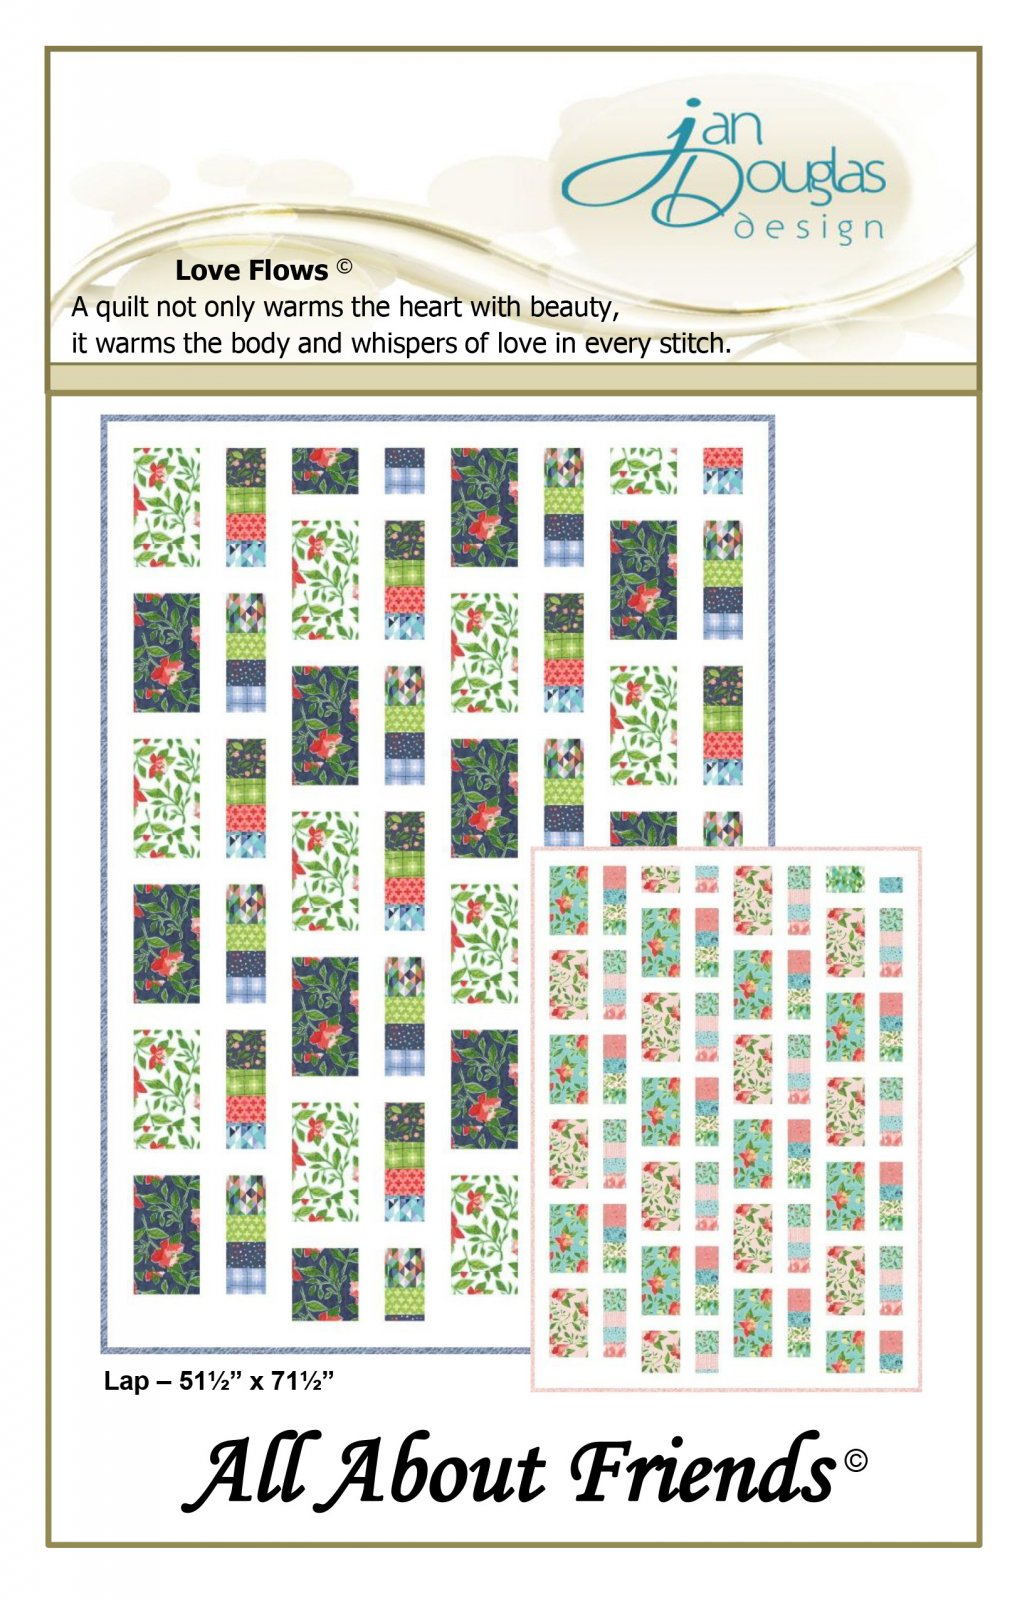 All About Friends Pattern